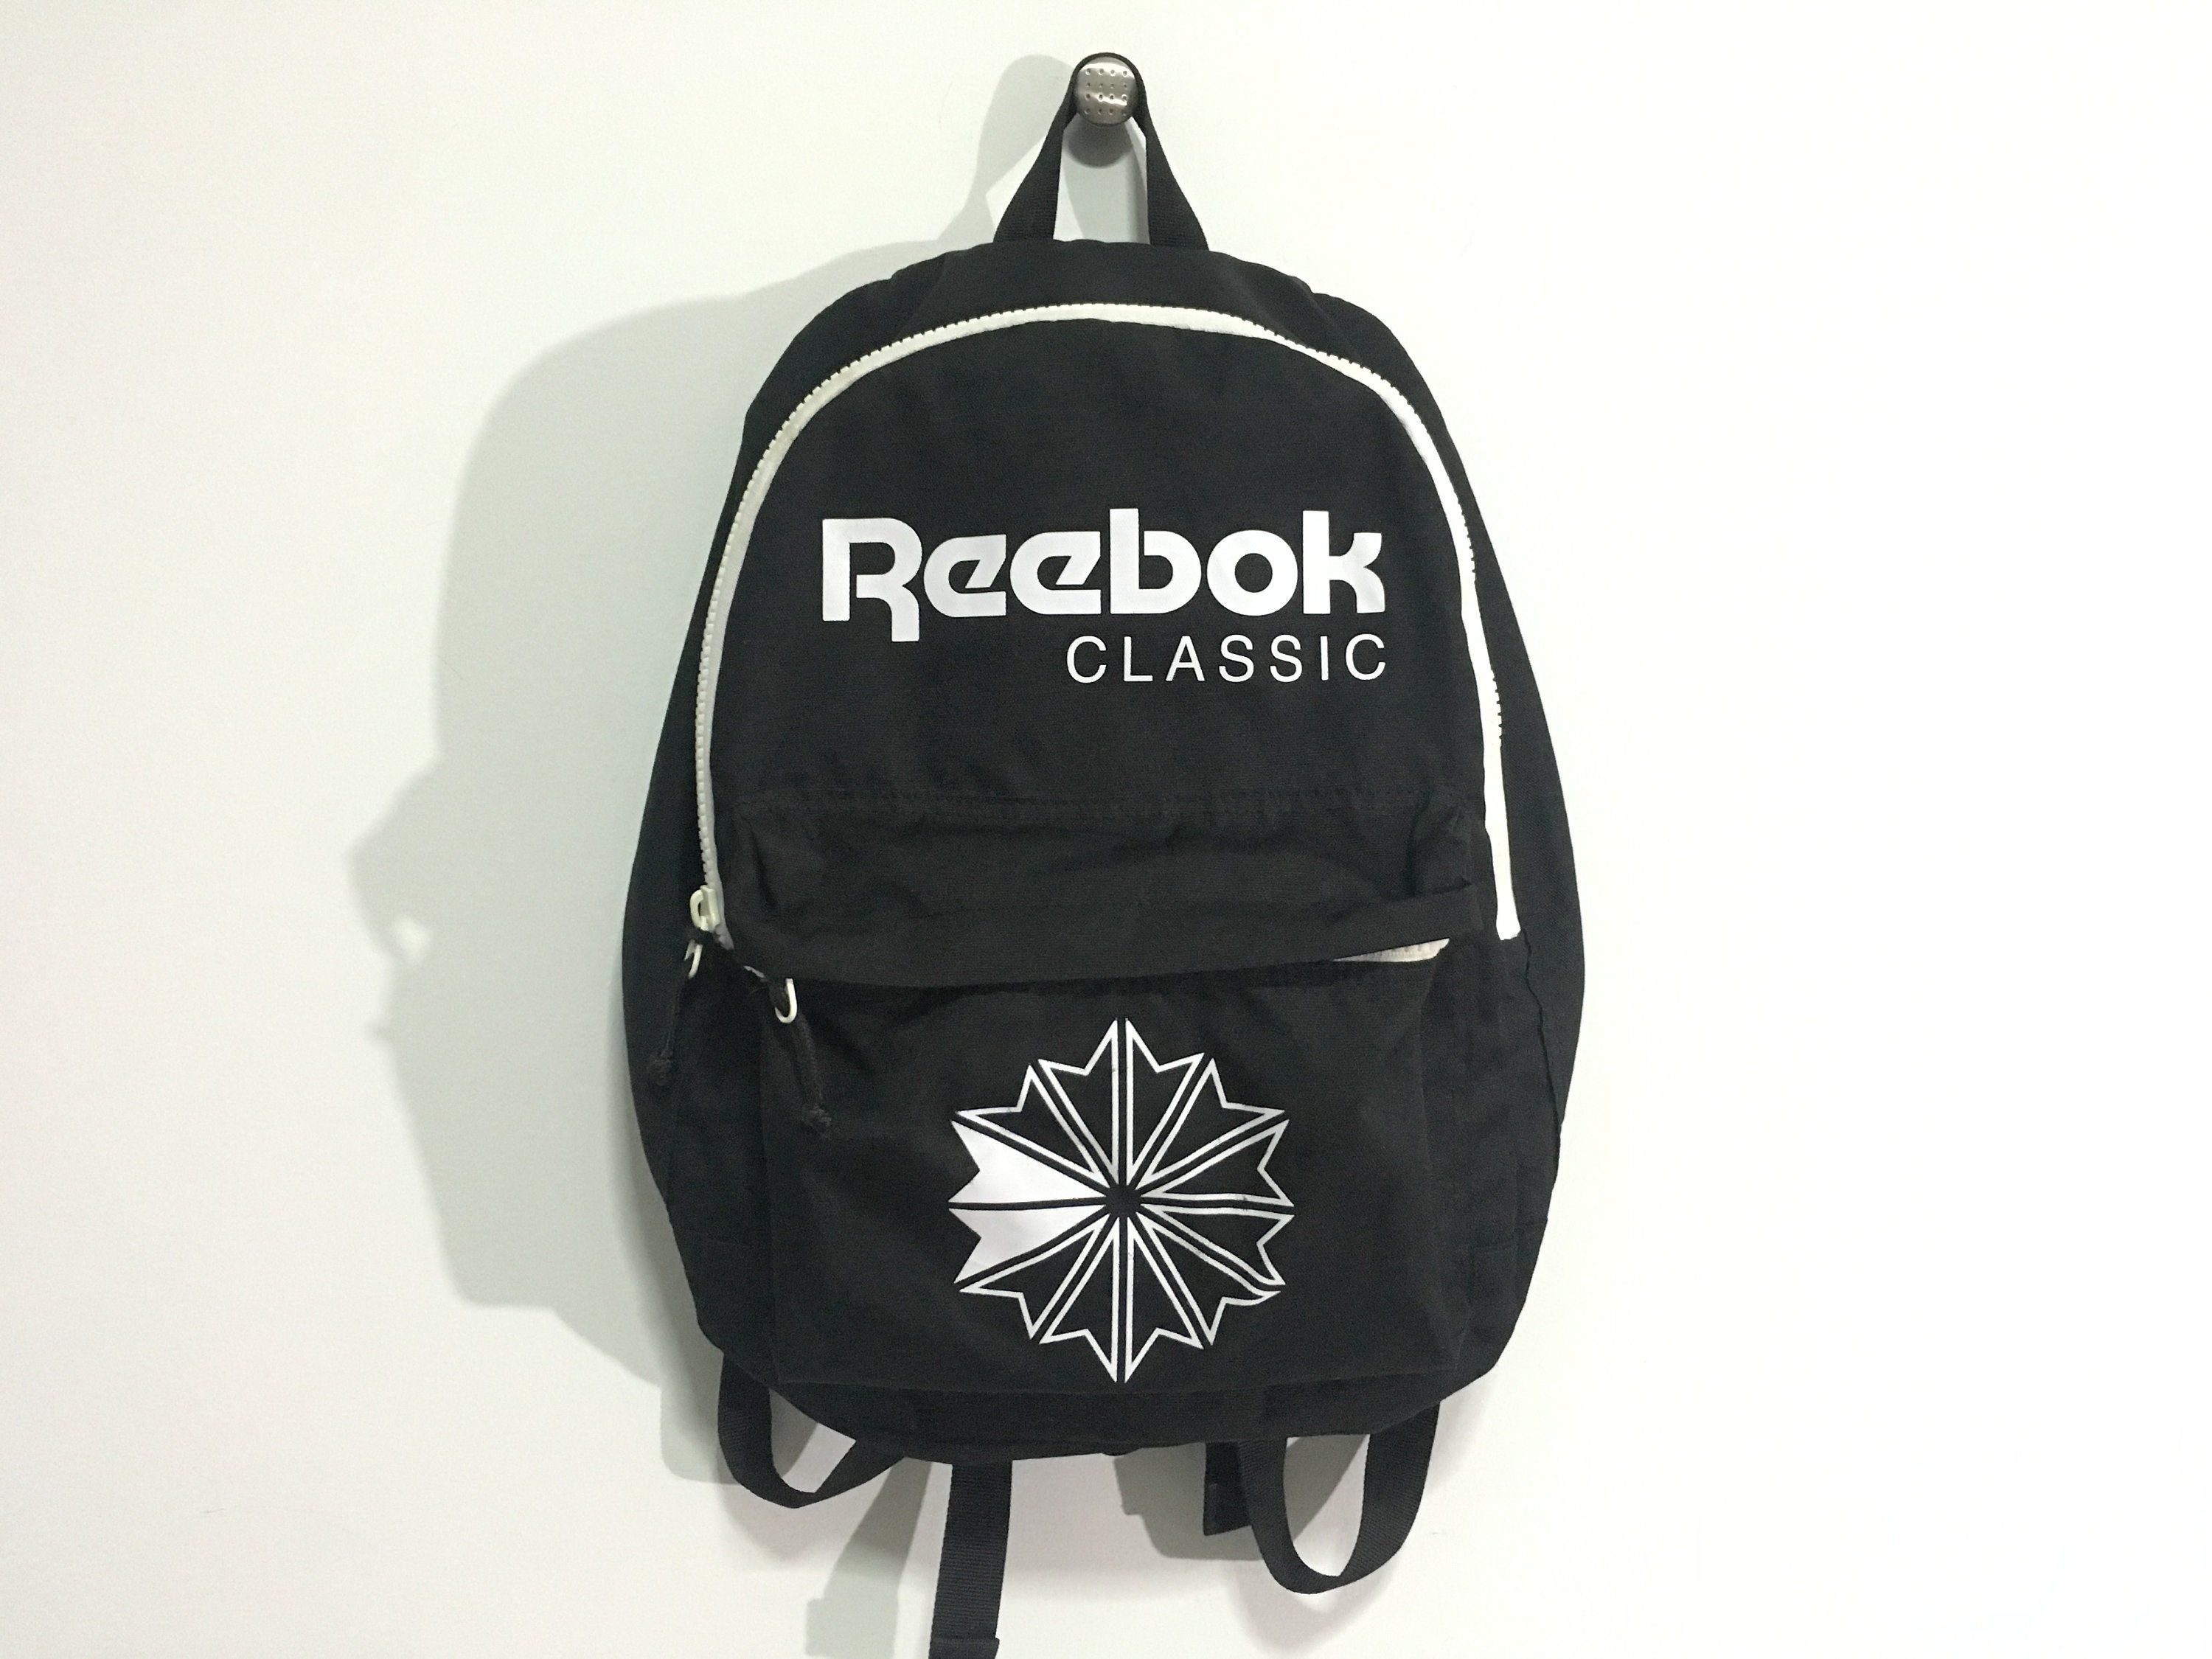 d0ec790f5a65 Vintage Reebok backpack Reebok classic big logo spell out bag Black White  Excellent condition by AlivevintageShop